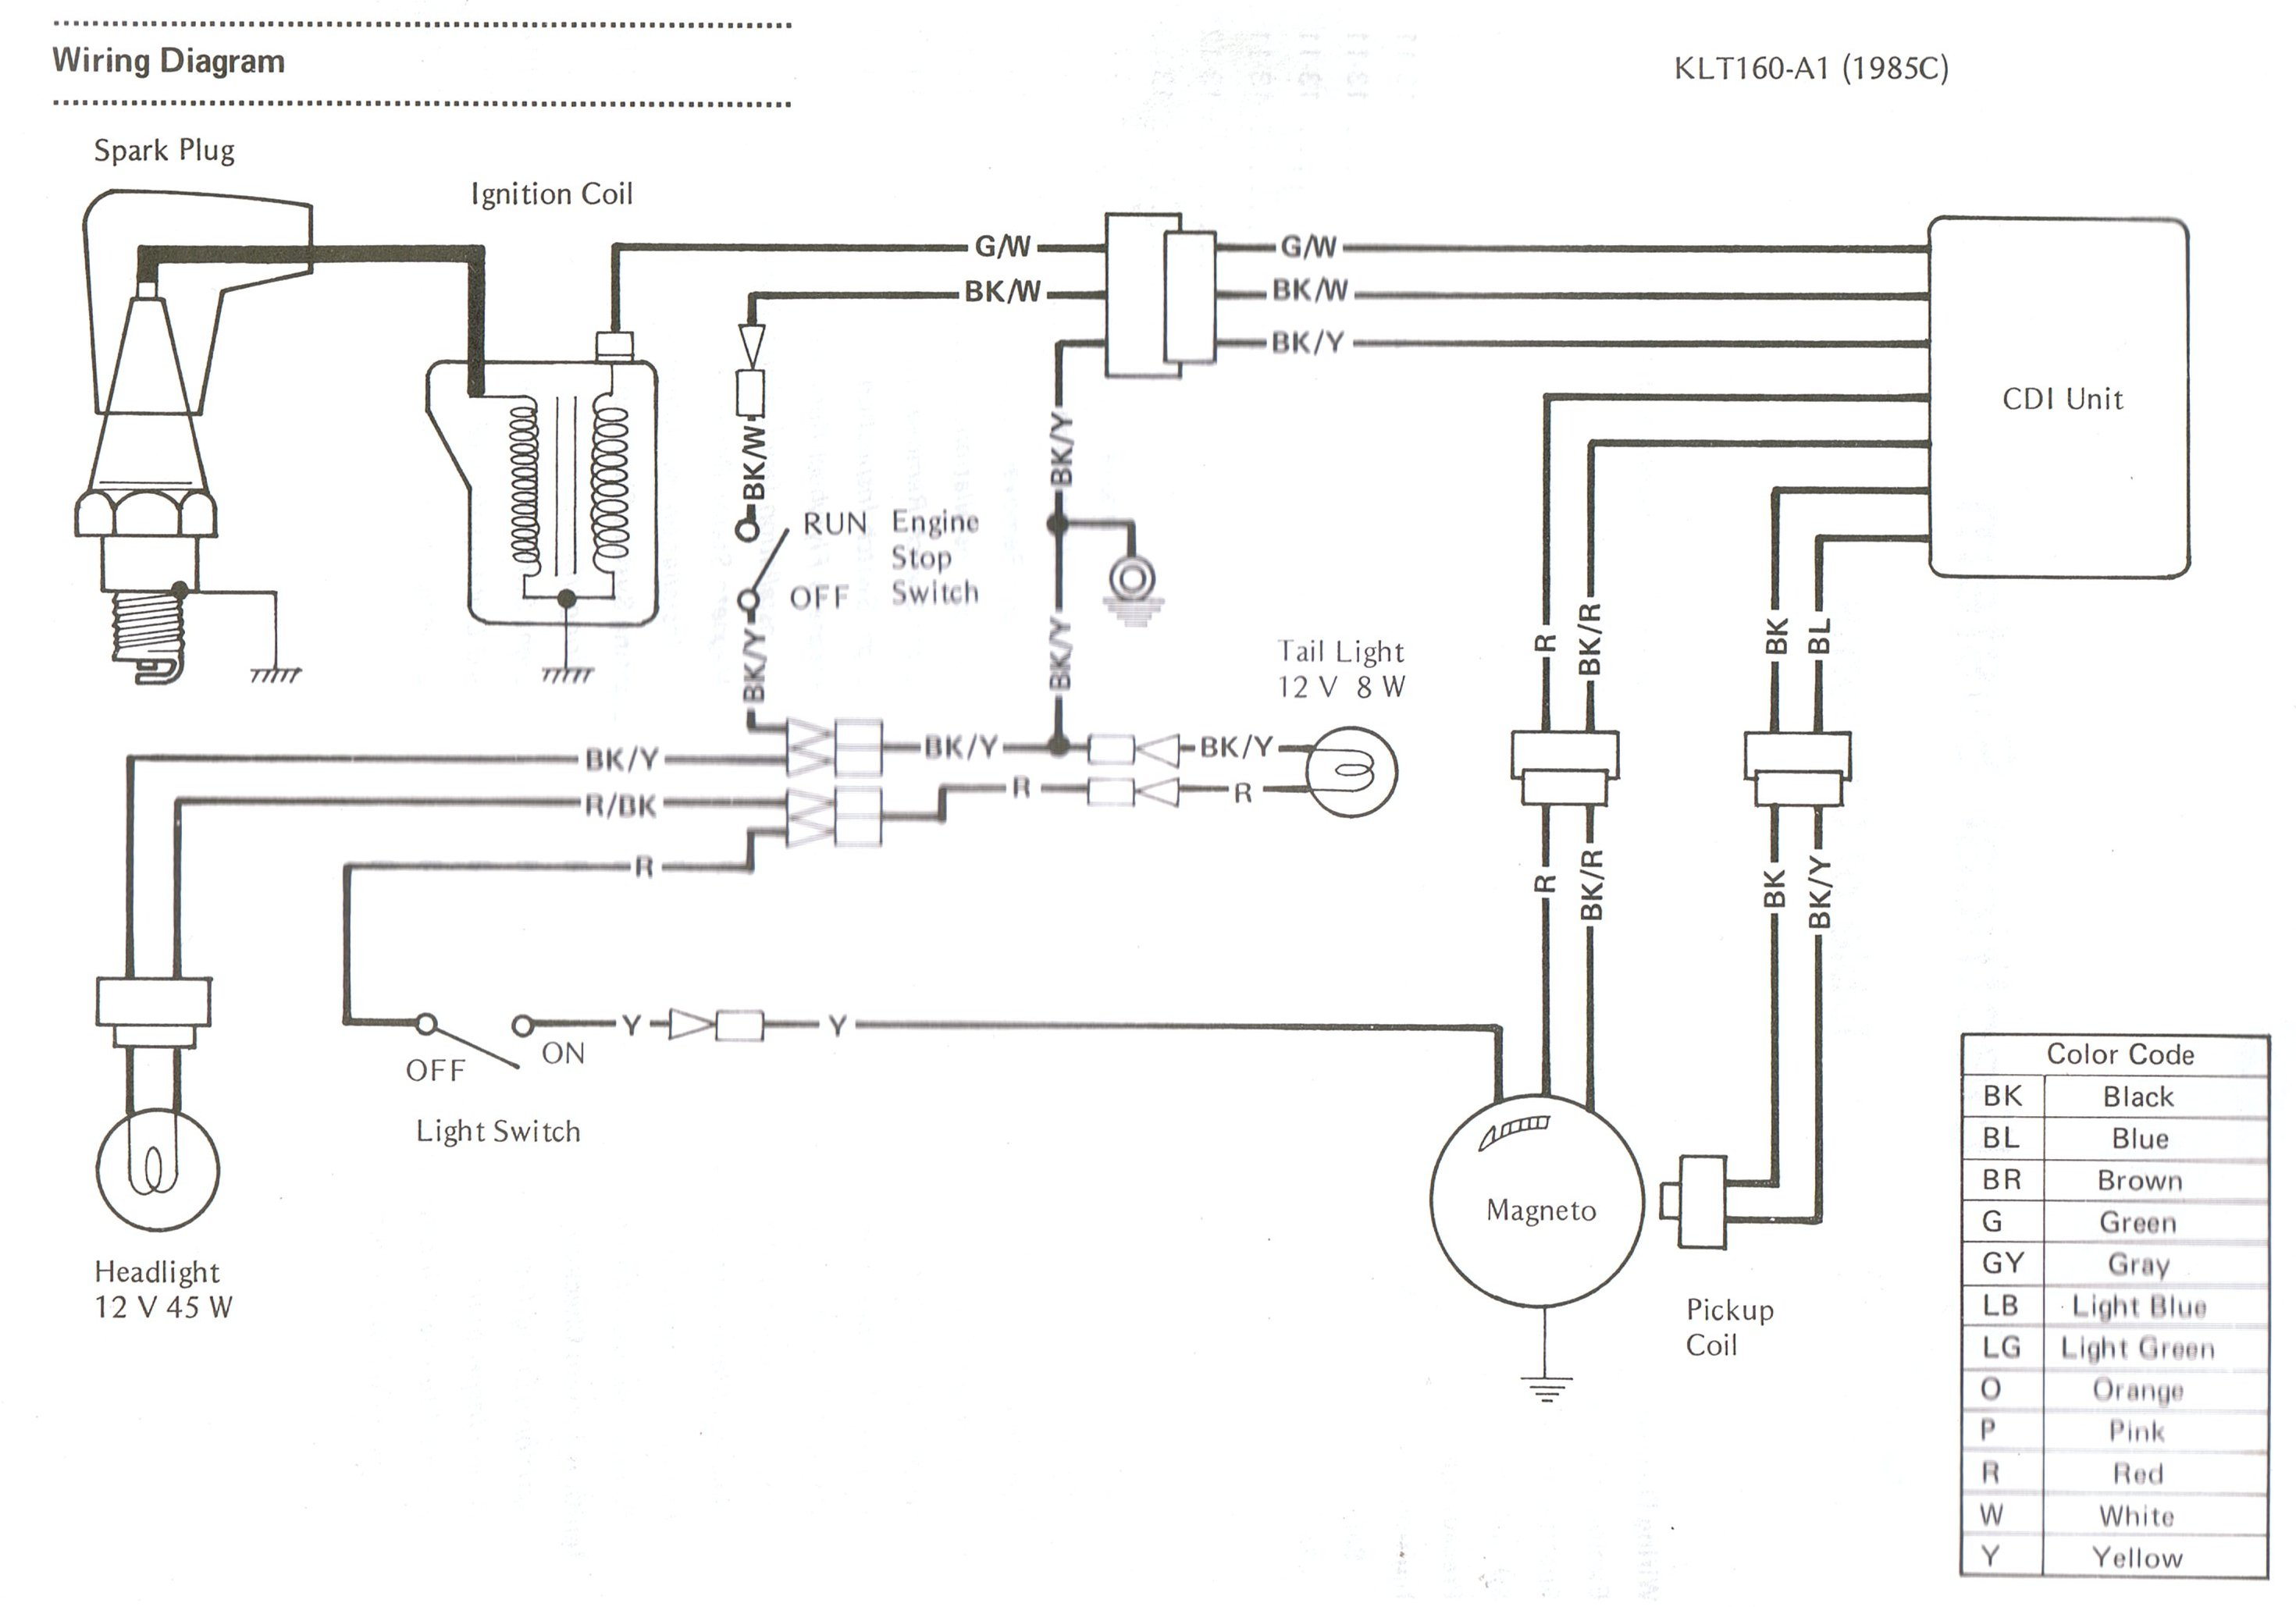 KLT160A1x85 polaris 600 wiring diagram wiring diagram 2004 polaris sportsman 600 wiring diagram at reclaimingppi.co